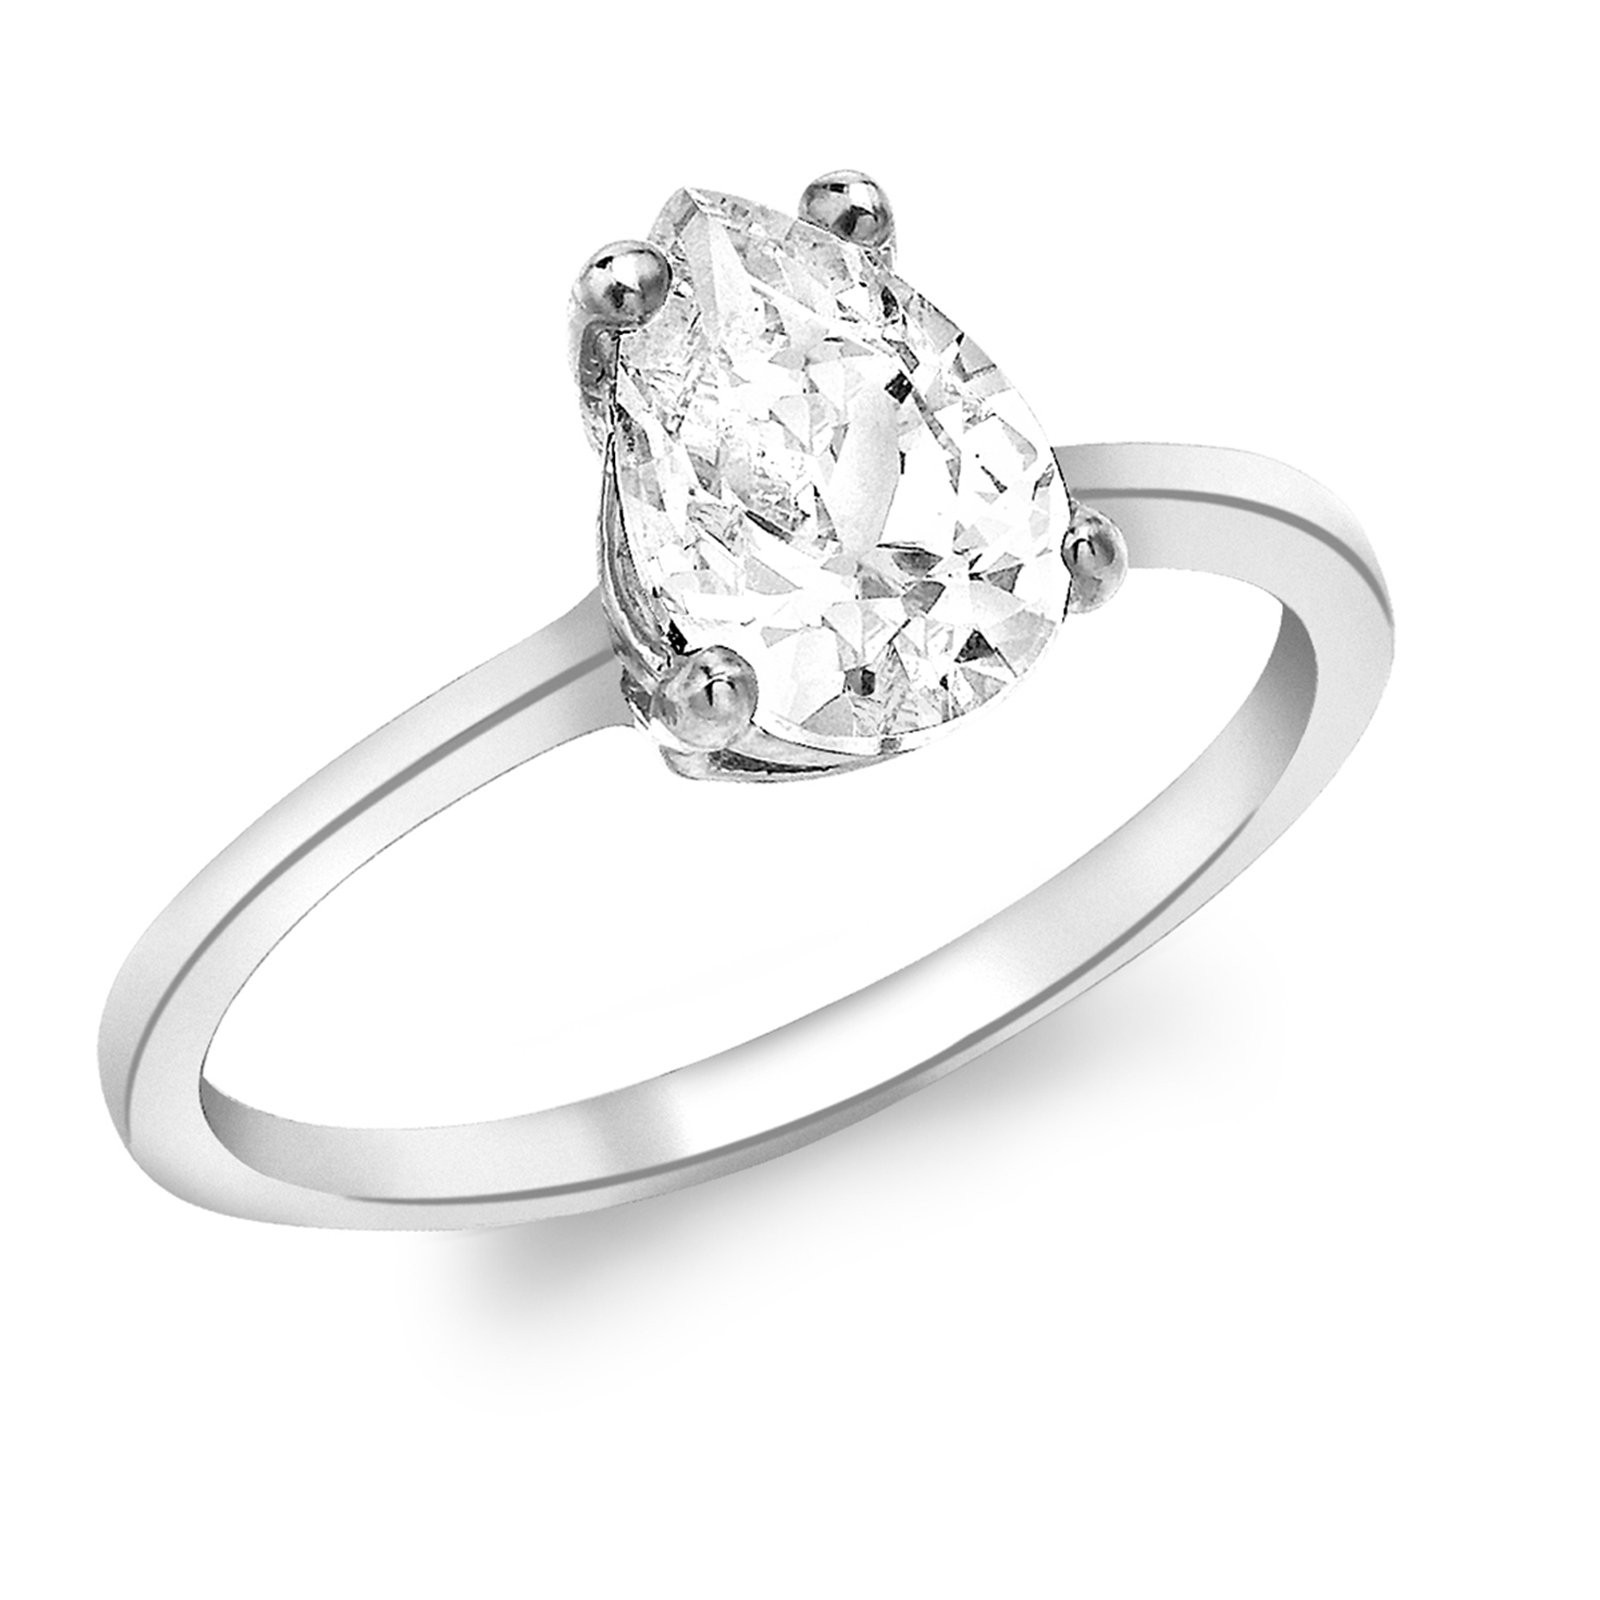 9ct White Gold Pear Cut Cubic Zirconia Solitaire Ring - Ring Size J